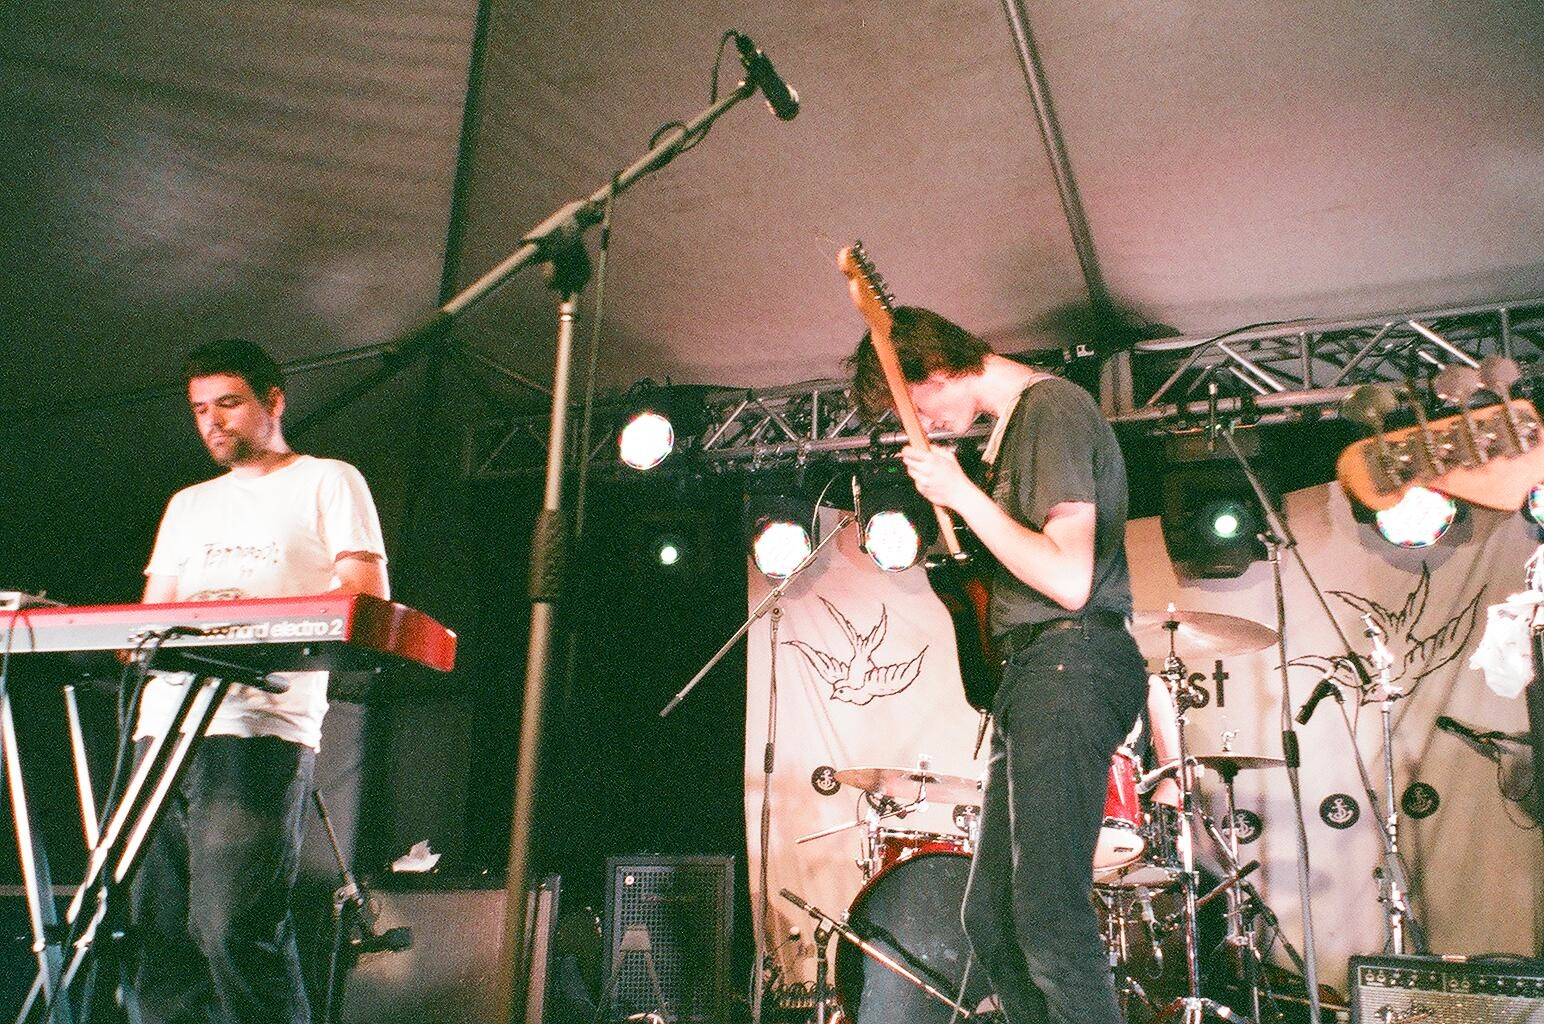 Ought at Sappy Fest 9